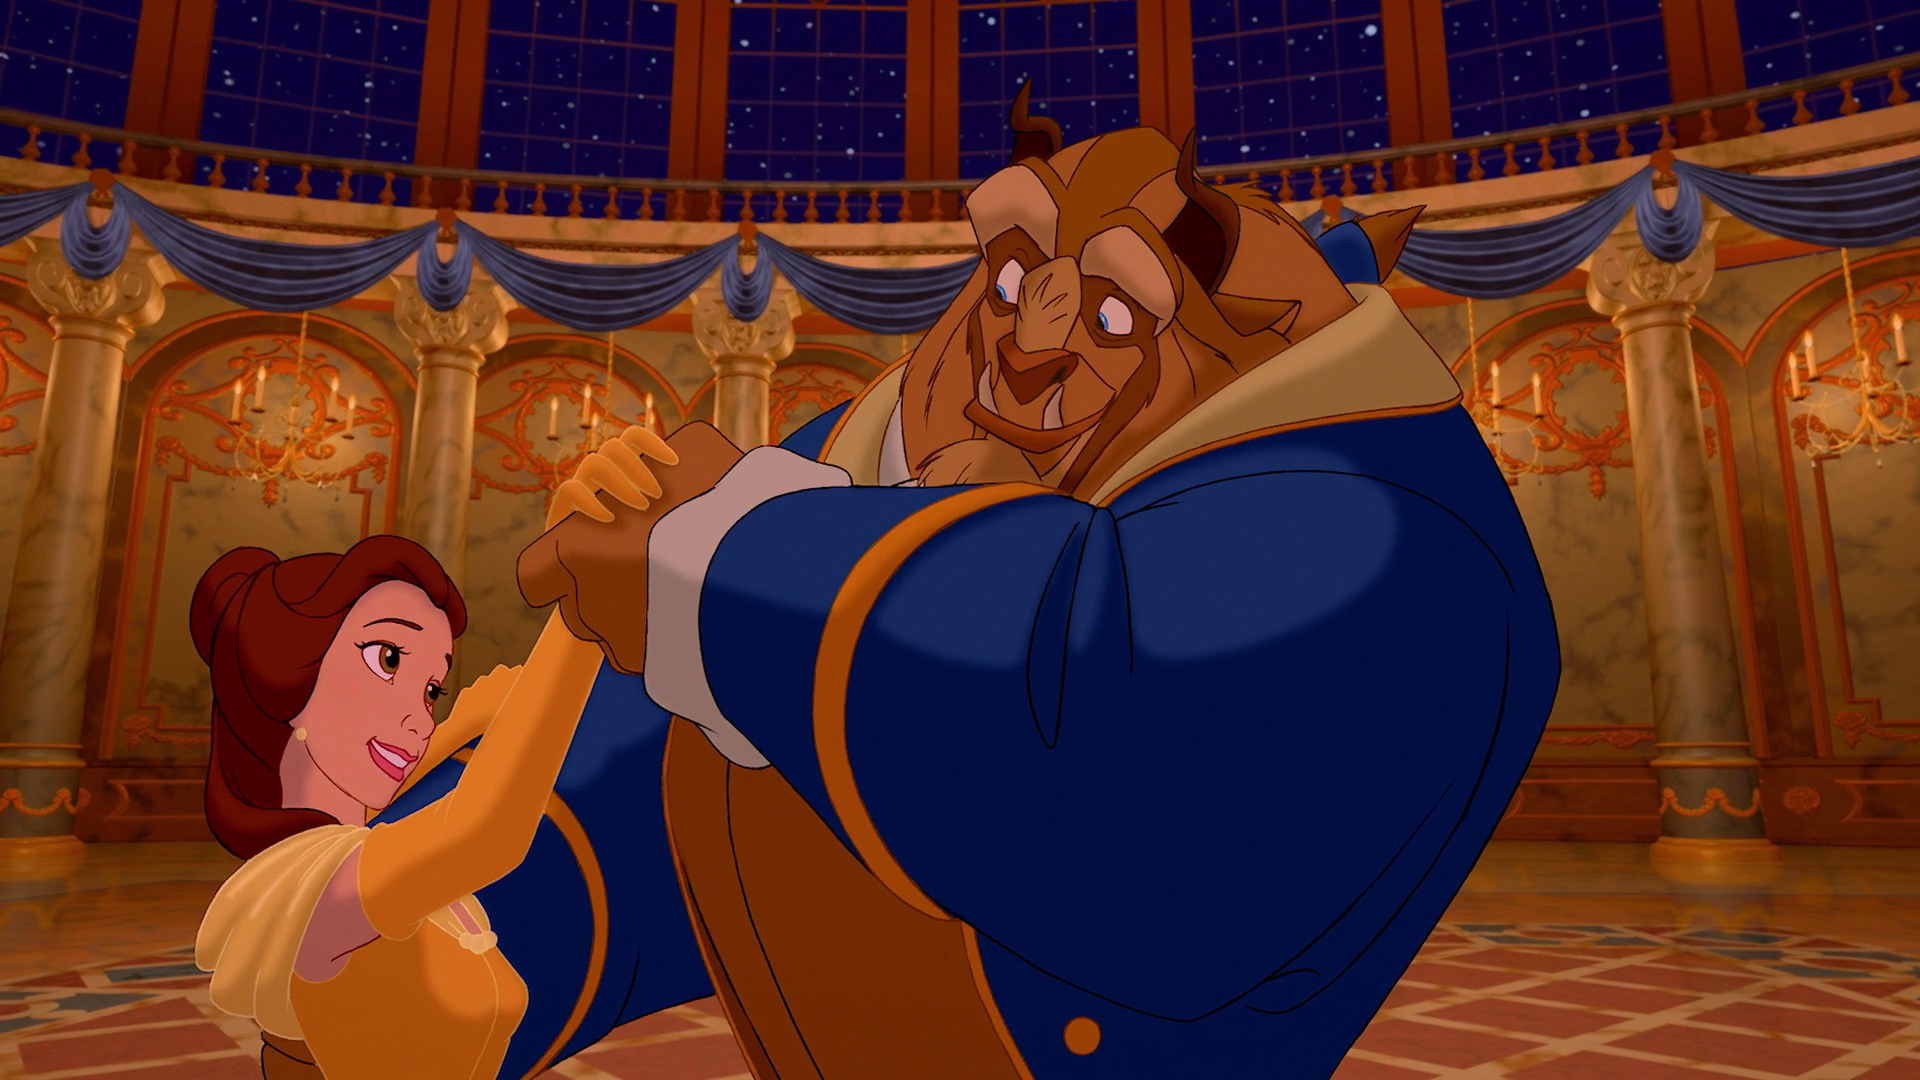 an overview of the veiled beauty in the animated movie beauty and the beast by walt disney